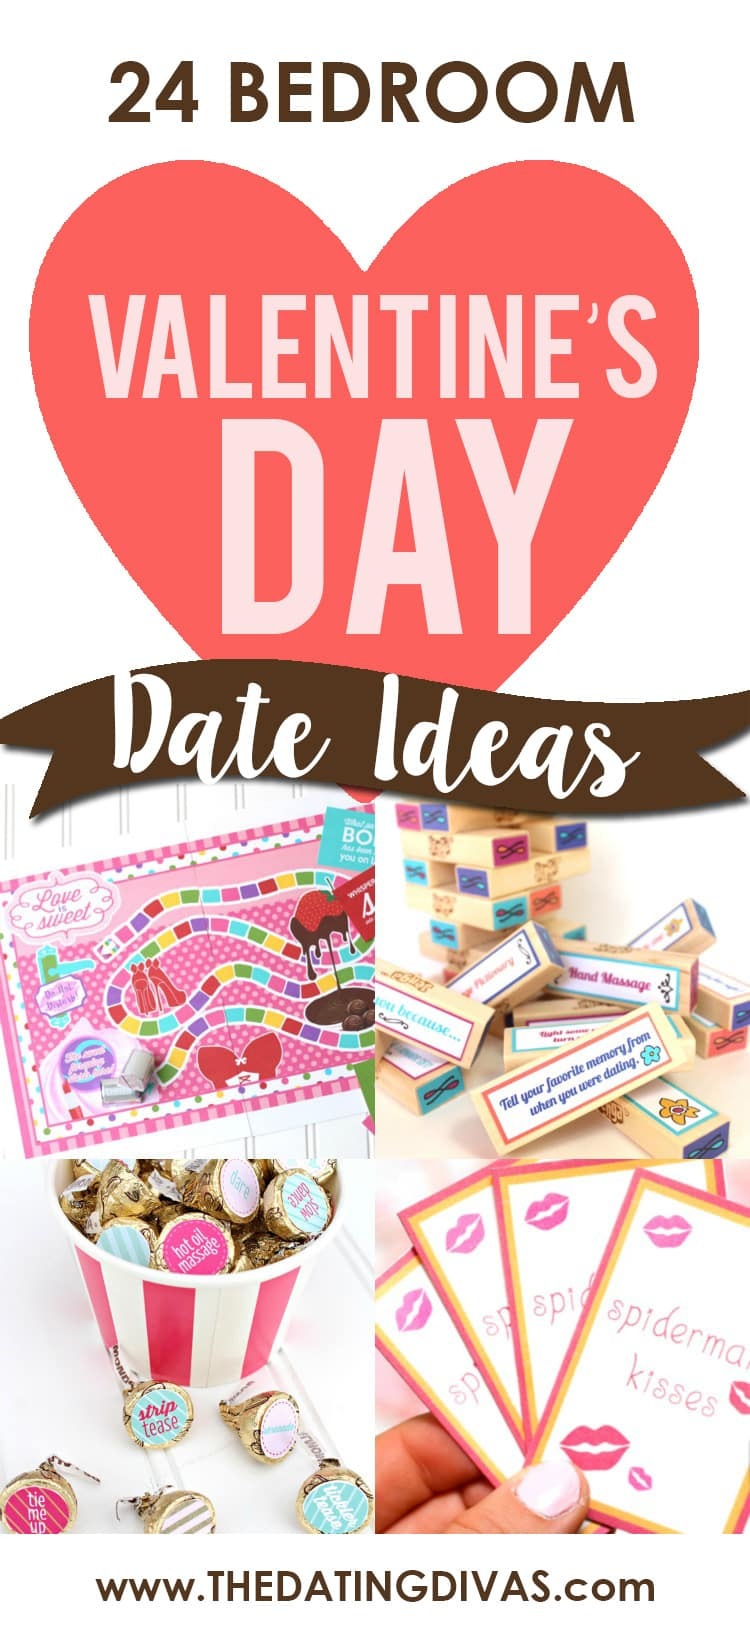 valentines day ideas dating Make valentine's day special find romantic dinner and dessert recipes for your sweetie, plus fun cookies for the kids.